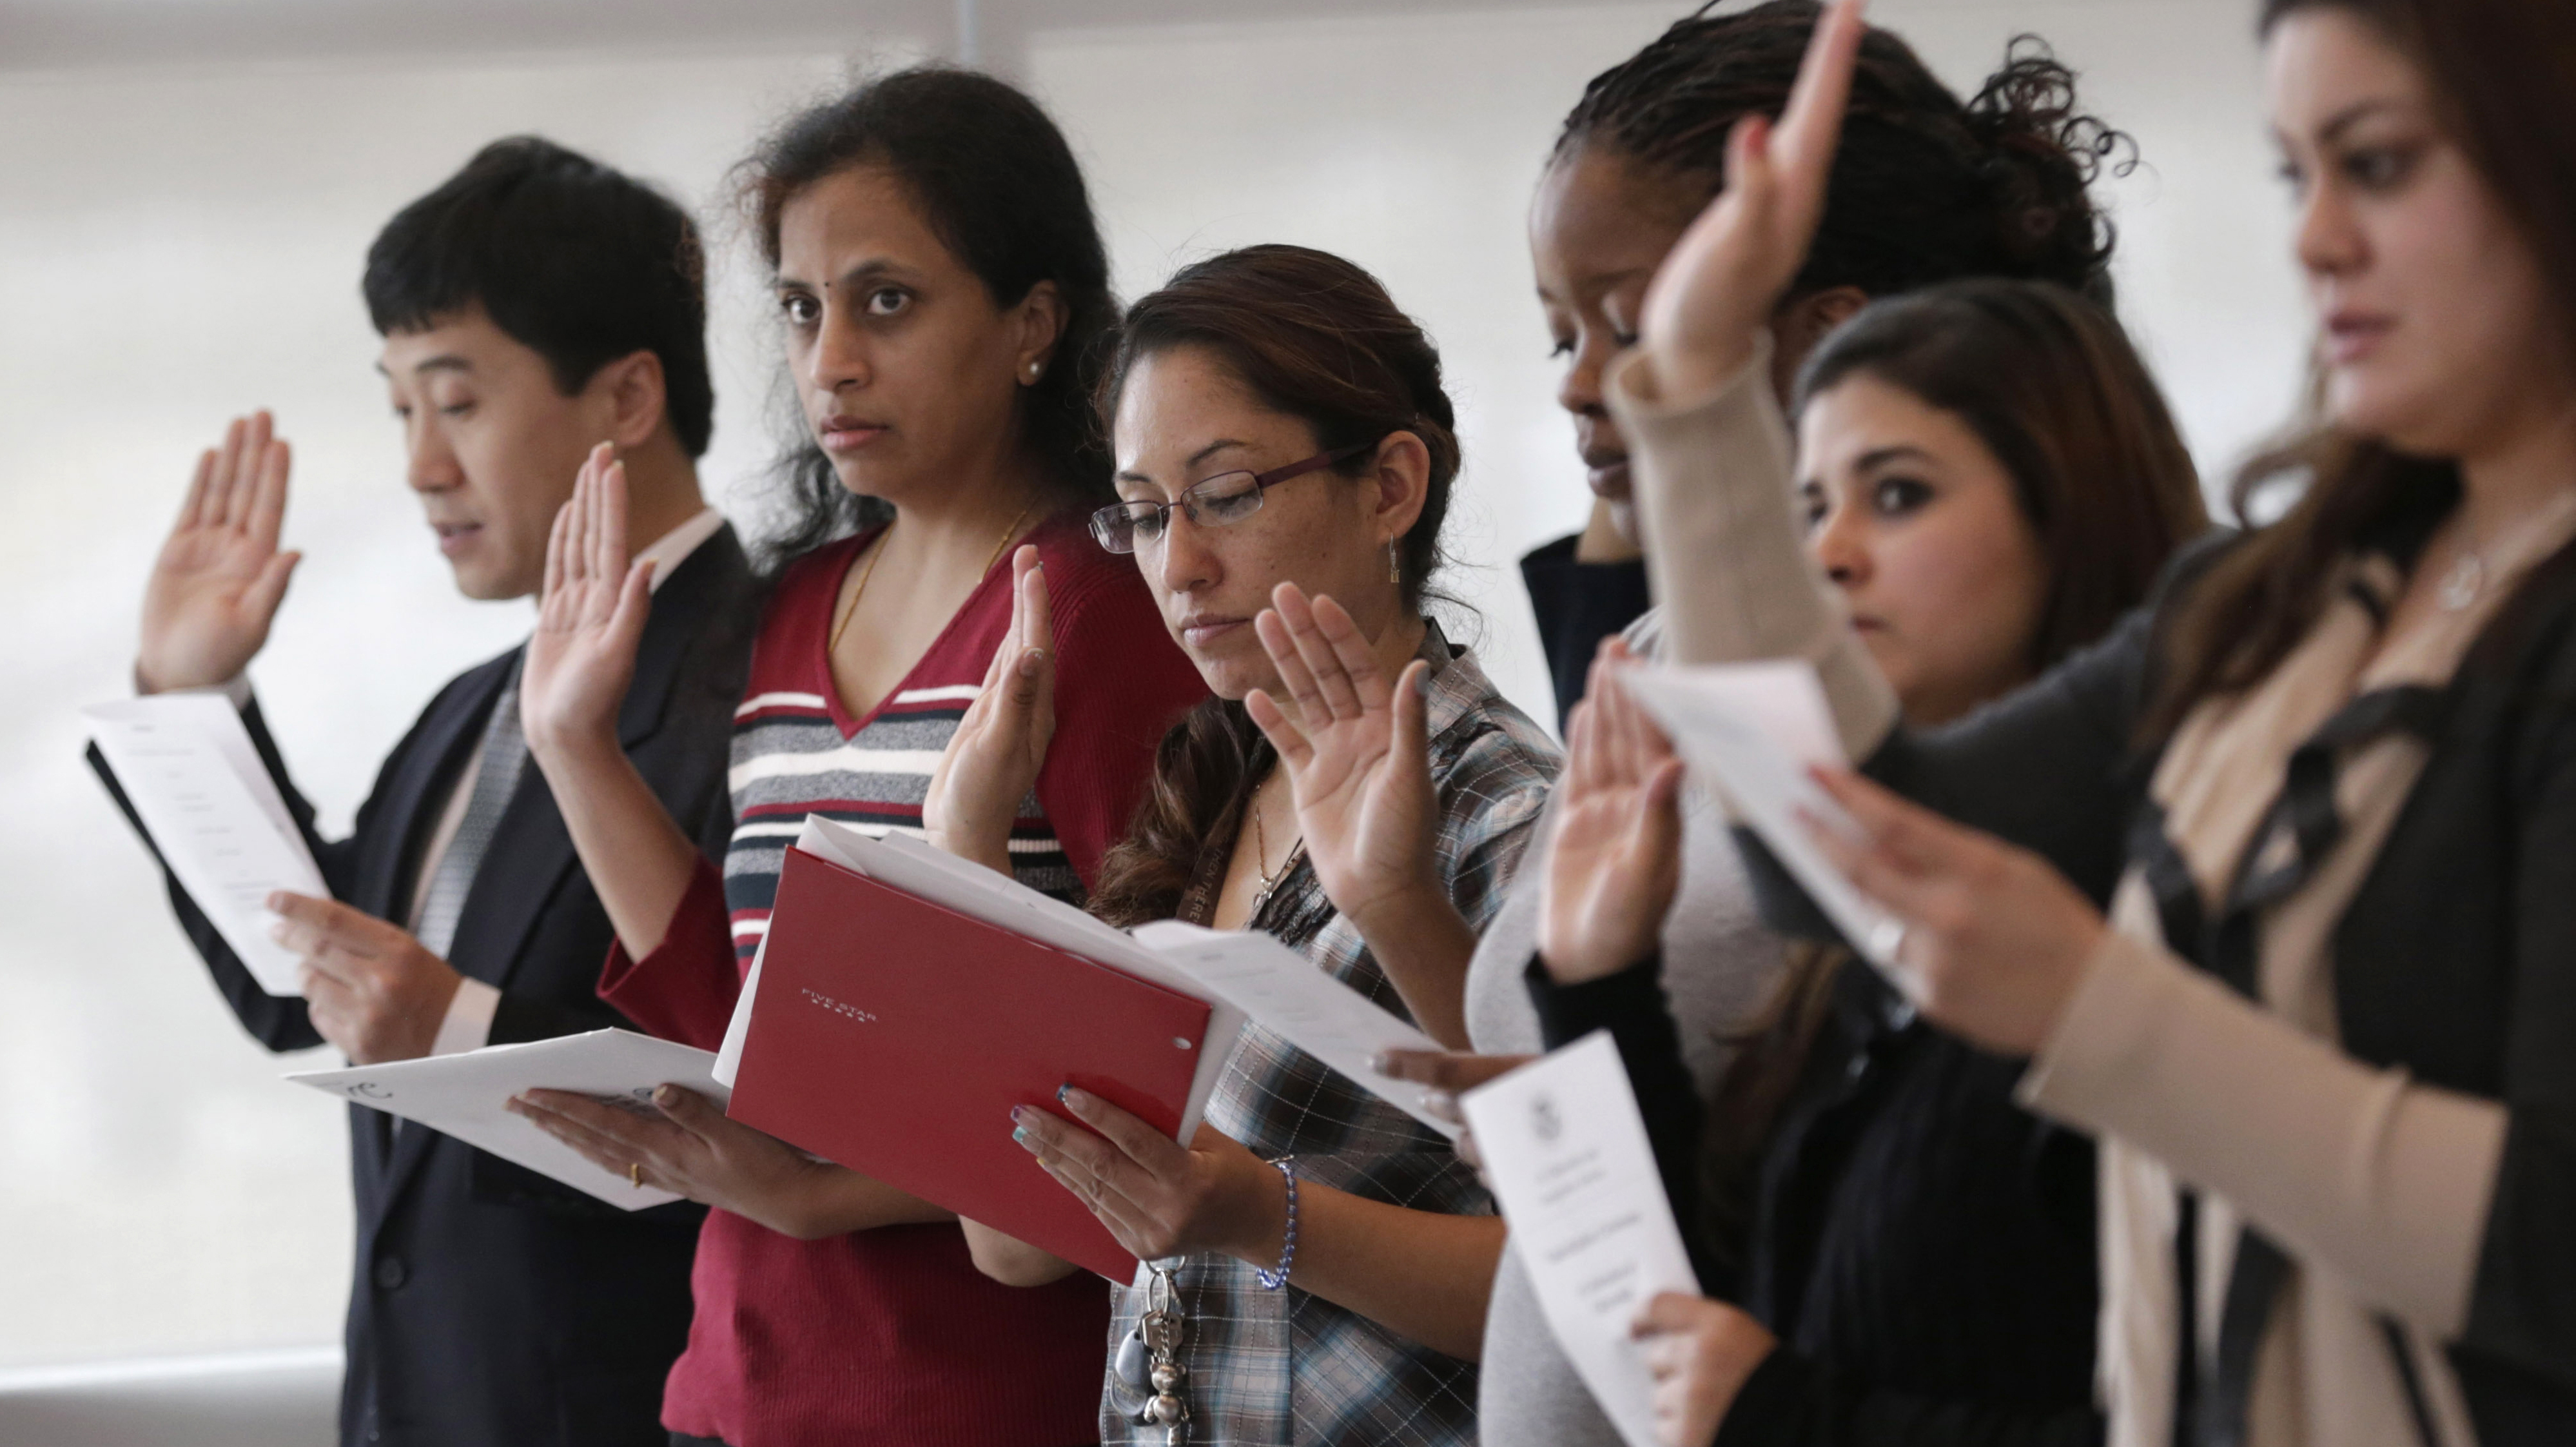 Immigrants To Be Largest Driver Of U.S. Population Growth